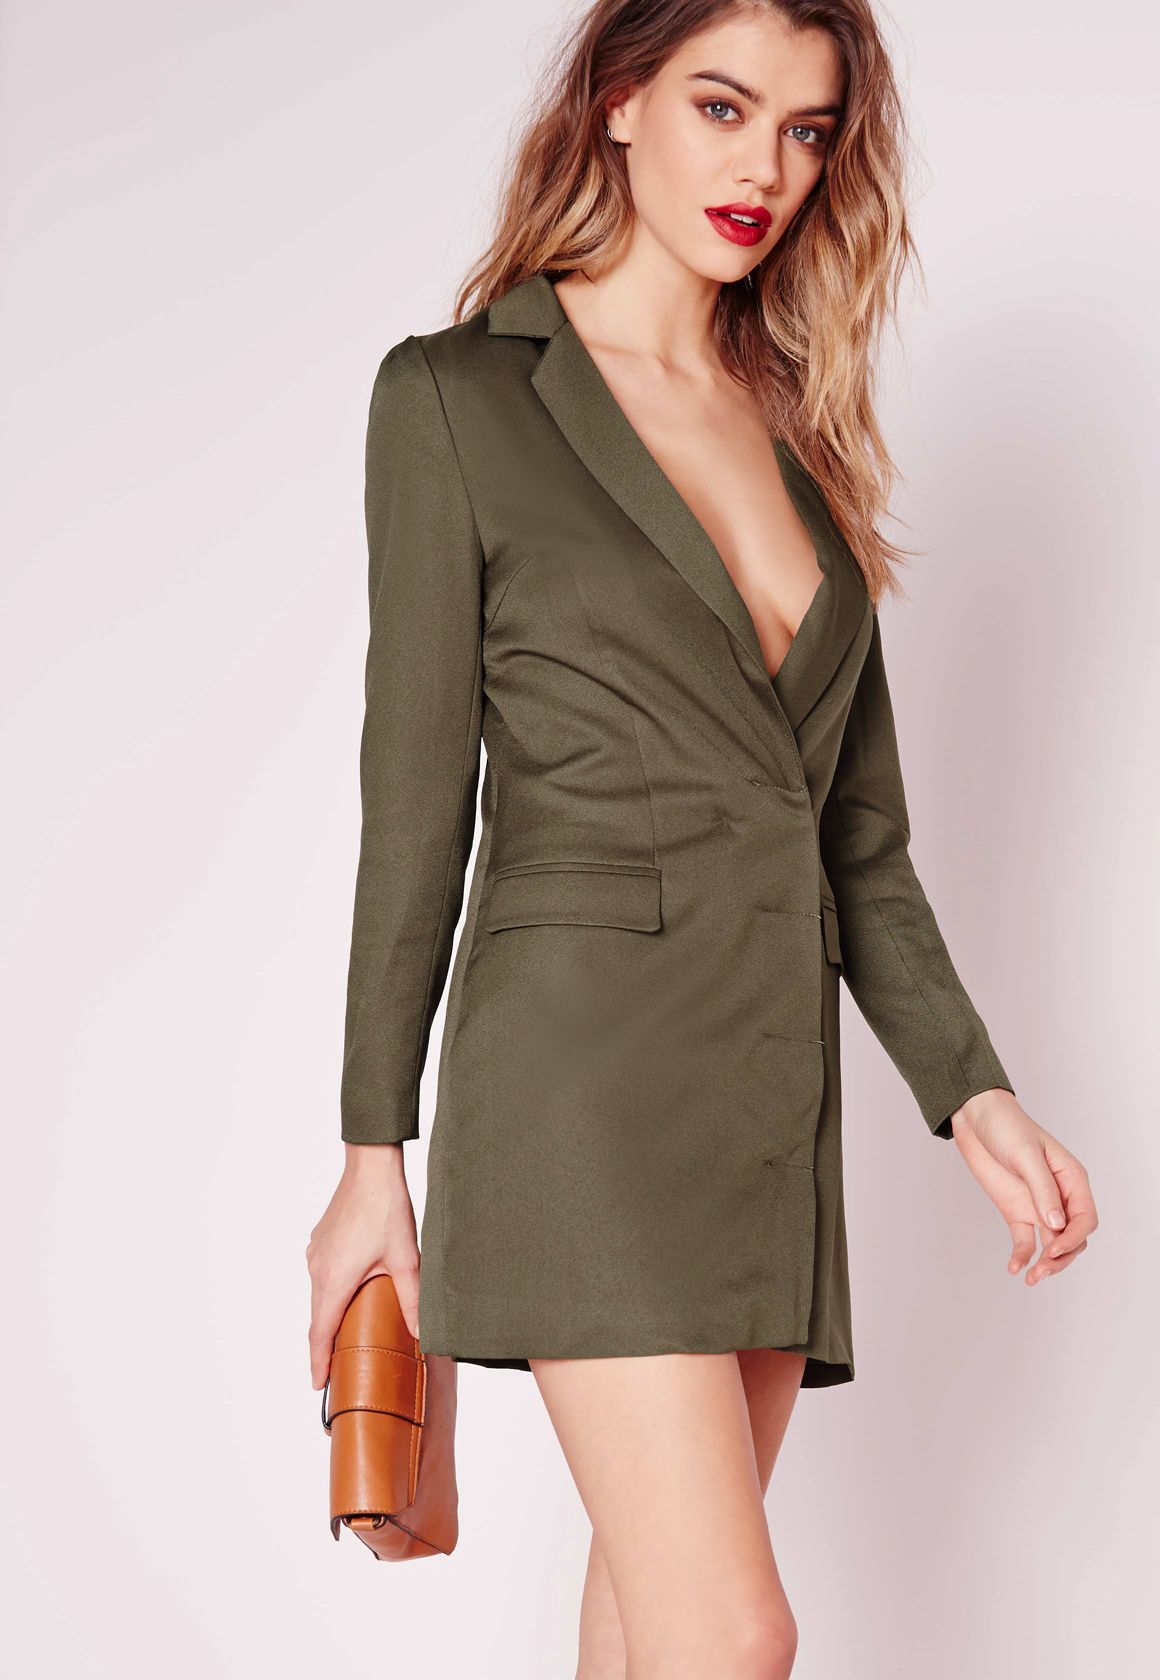 Refresh your work wardrobe with versatile women's jackets and blazers at New York & Company. Always polished and professional New York style. Refresh your work wardrobe with versatile women's jackets and blazers at New York & Company. Always polished and professional New York style. All .